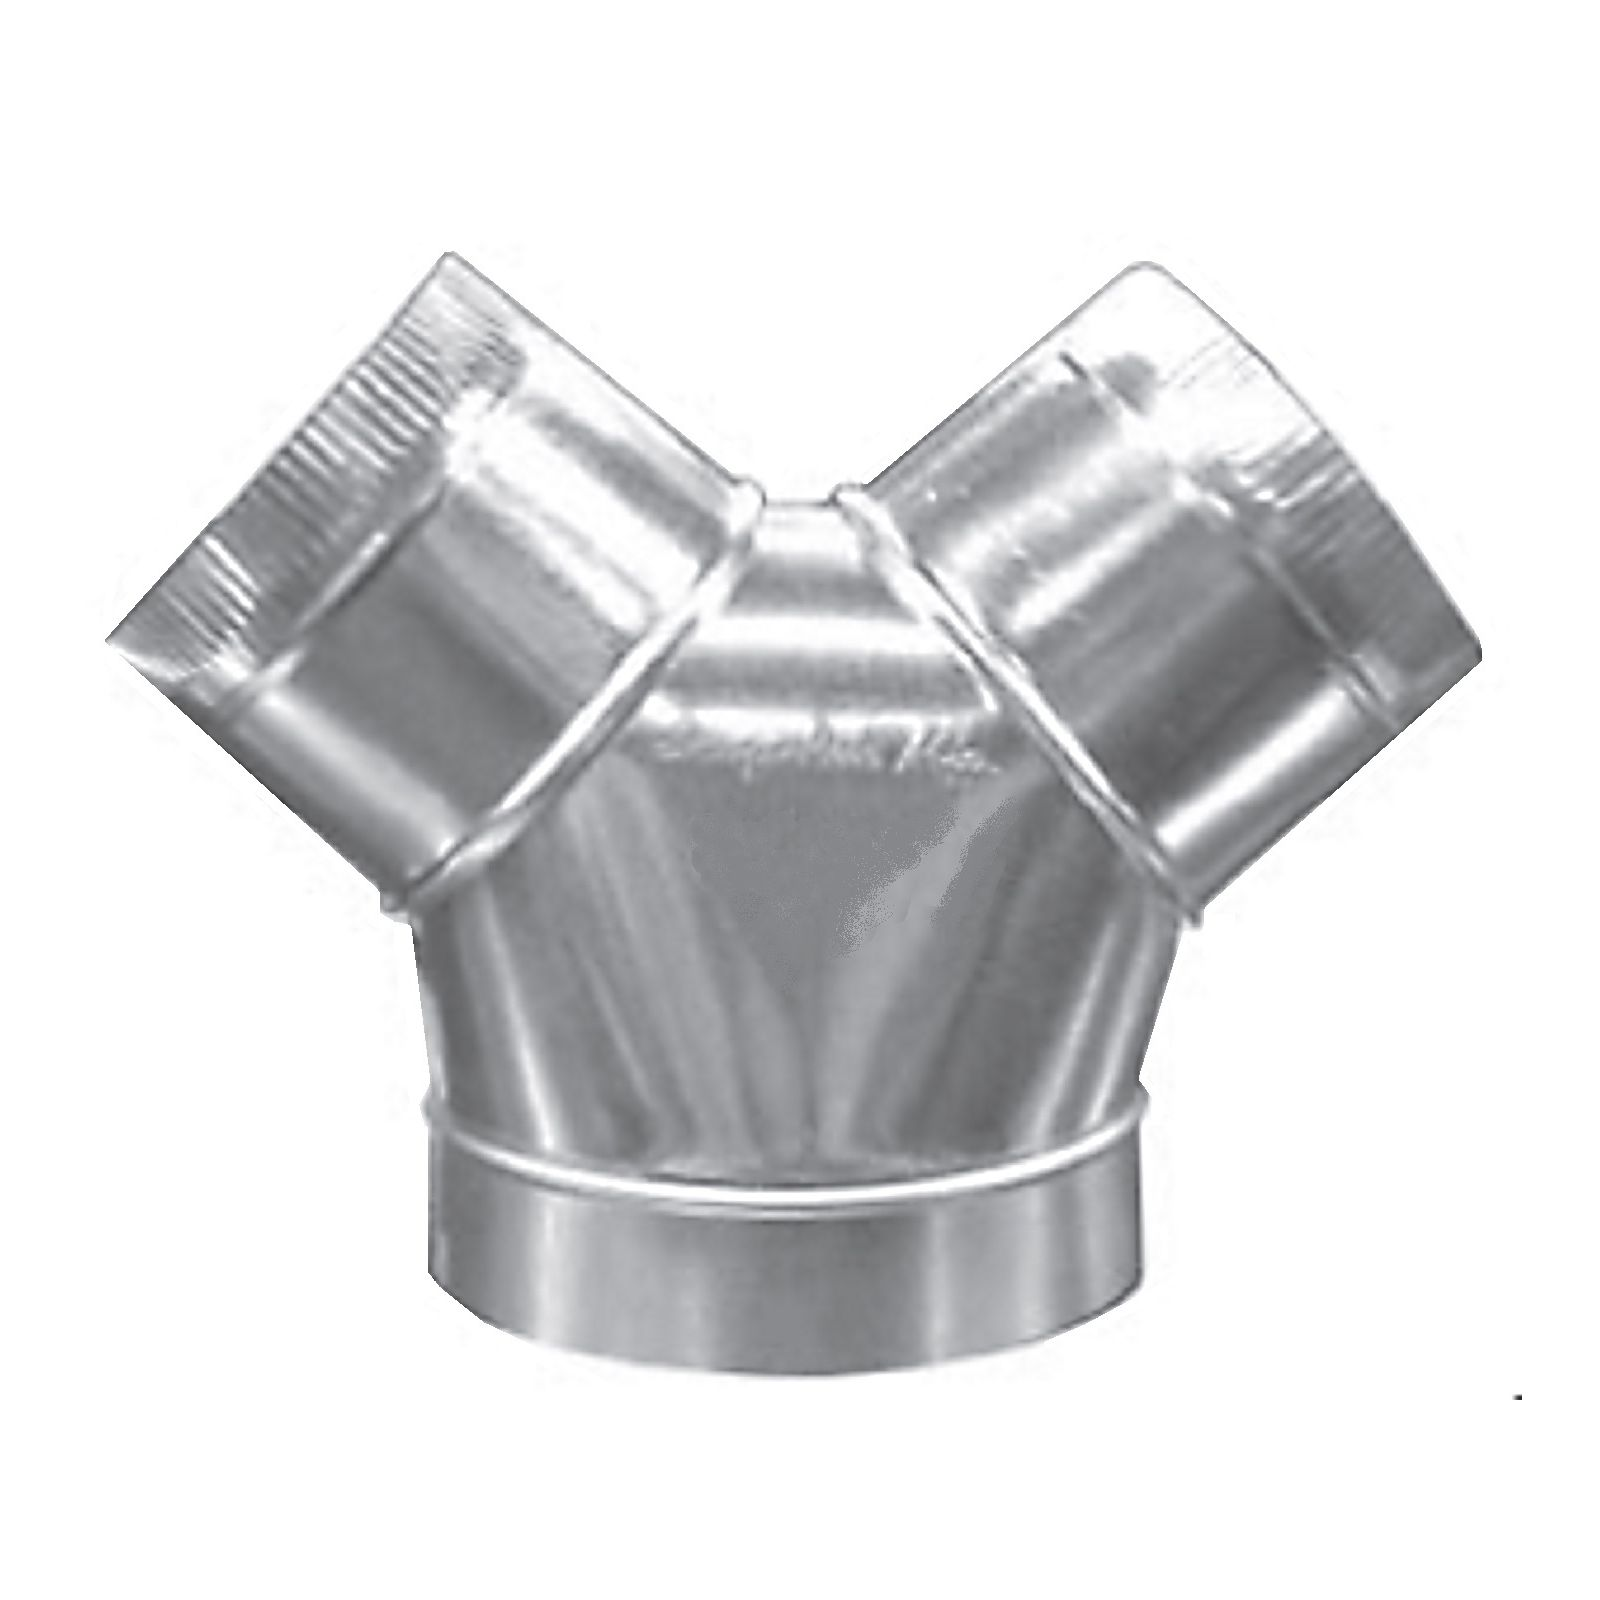 "Snap-Rite 06X4X4-307ECC - BullNose Wye, With 4"" Extension Collar, Crimp 2 Small Ends, 06"" X 04"" X 04"""